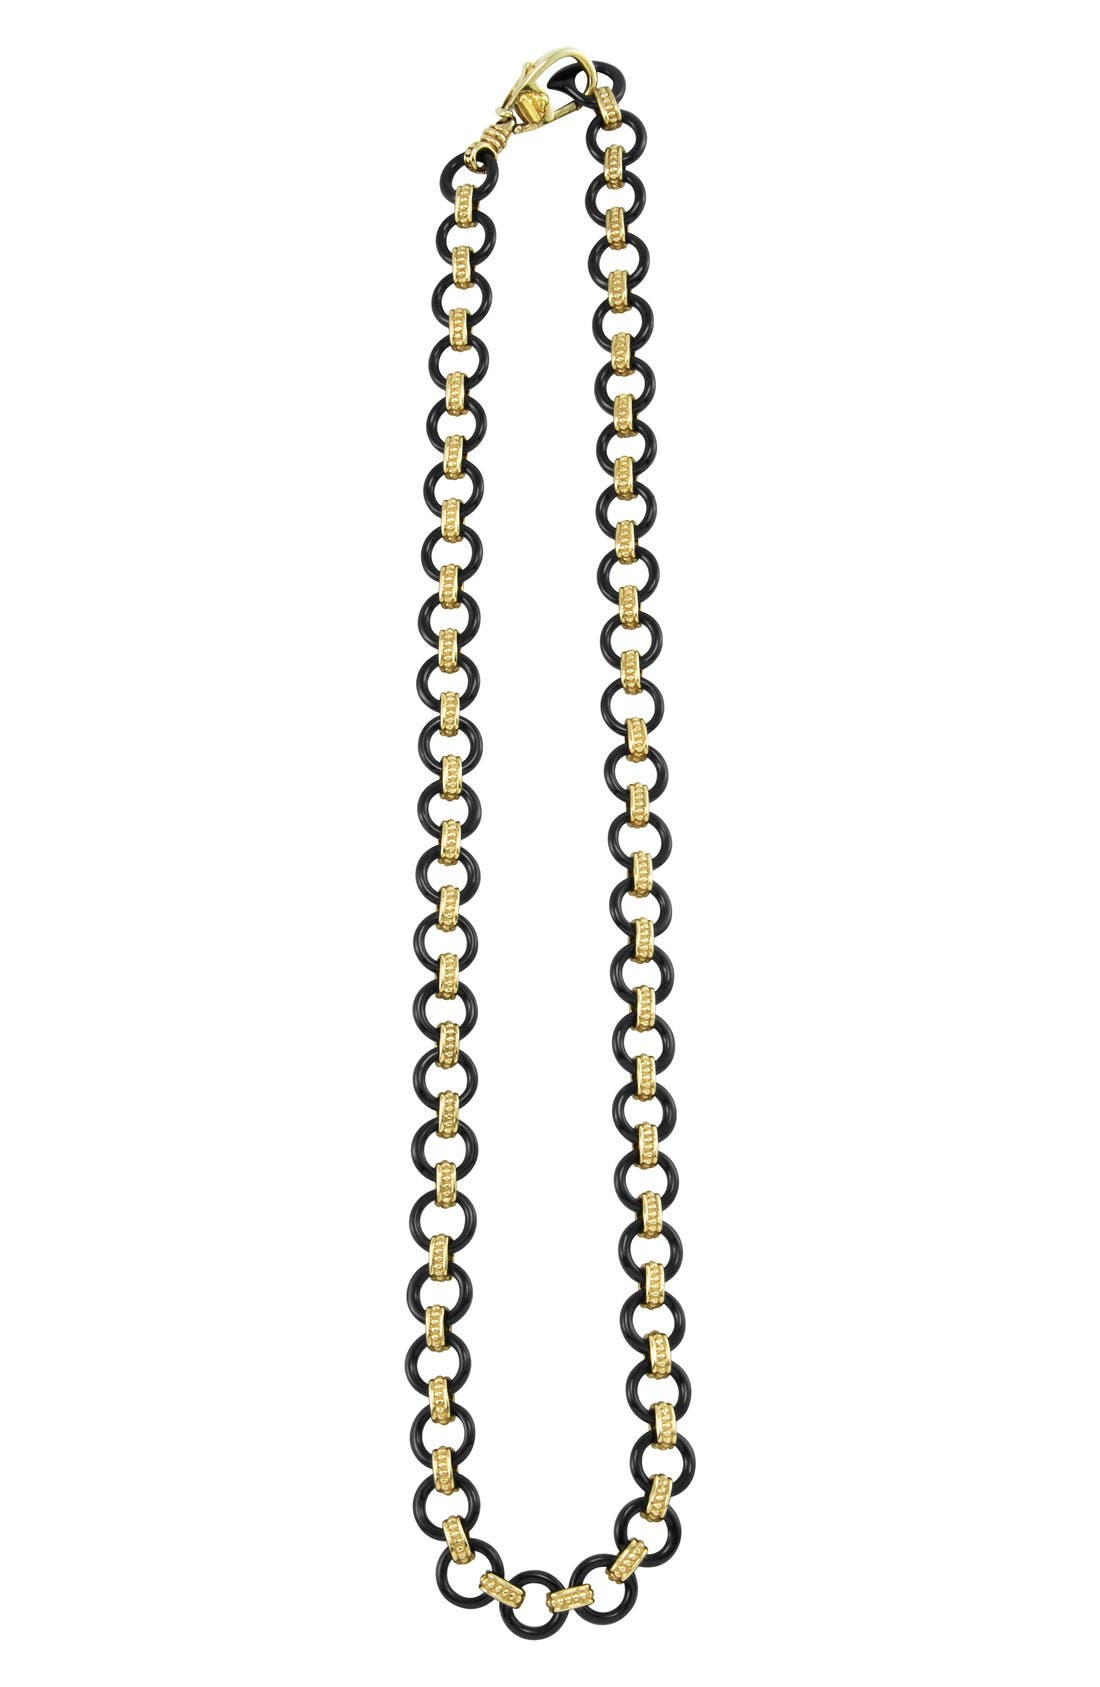 'Caviar Gold' Gold Link Necklace,                         Main,                         color, Black Agate/ Gold